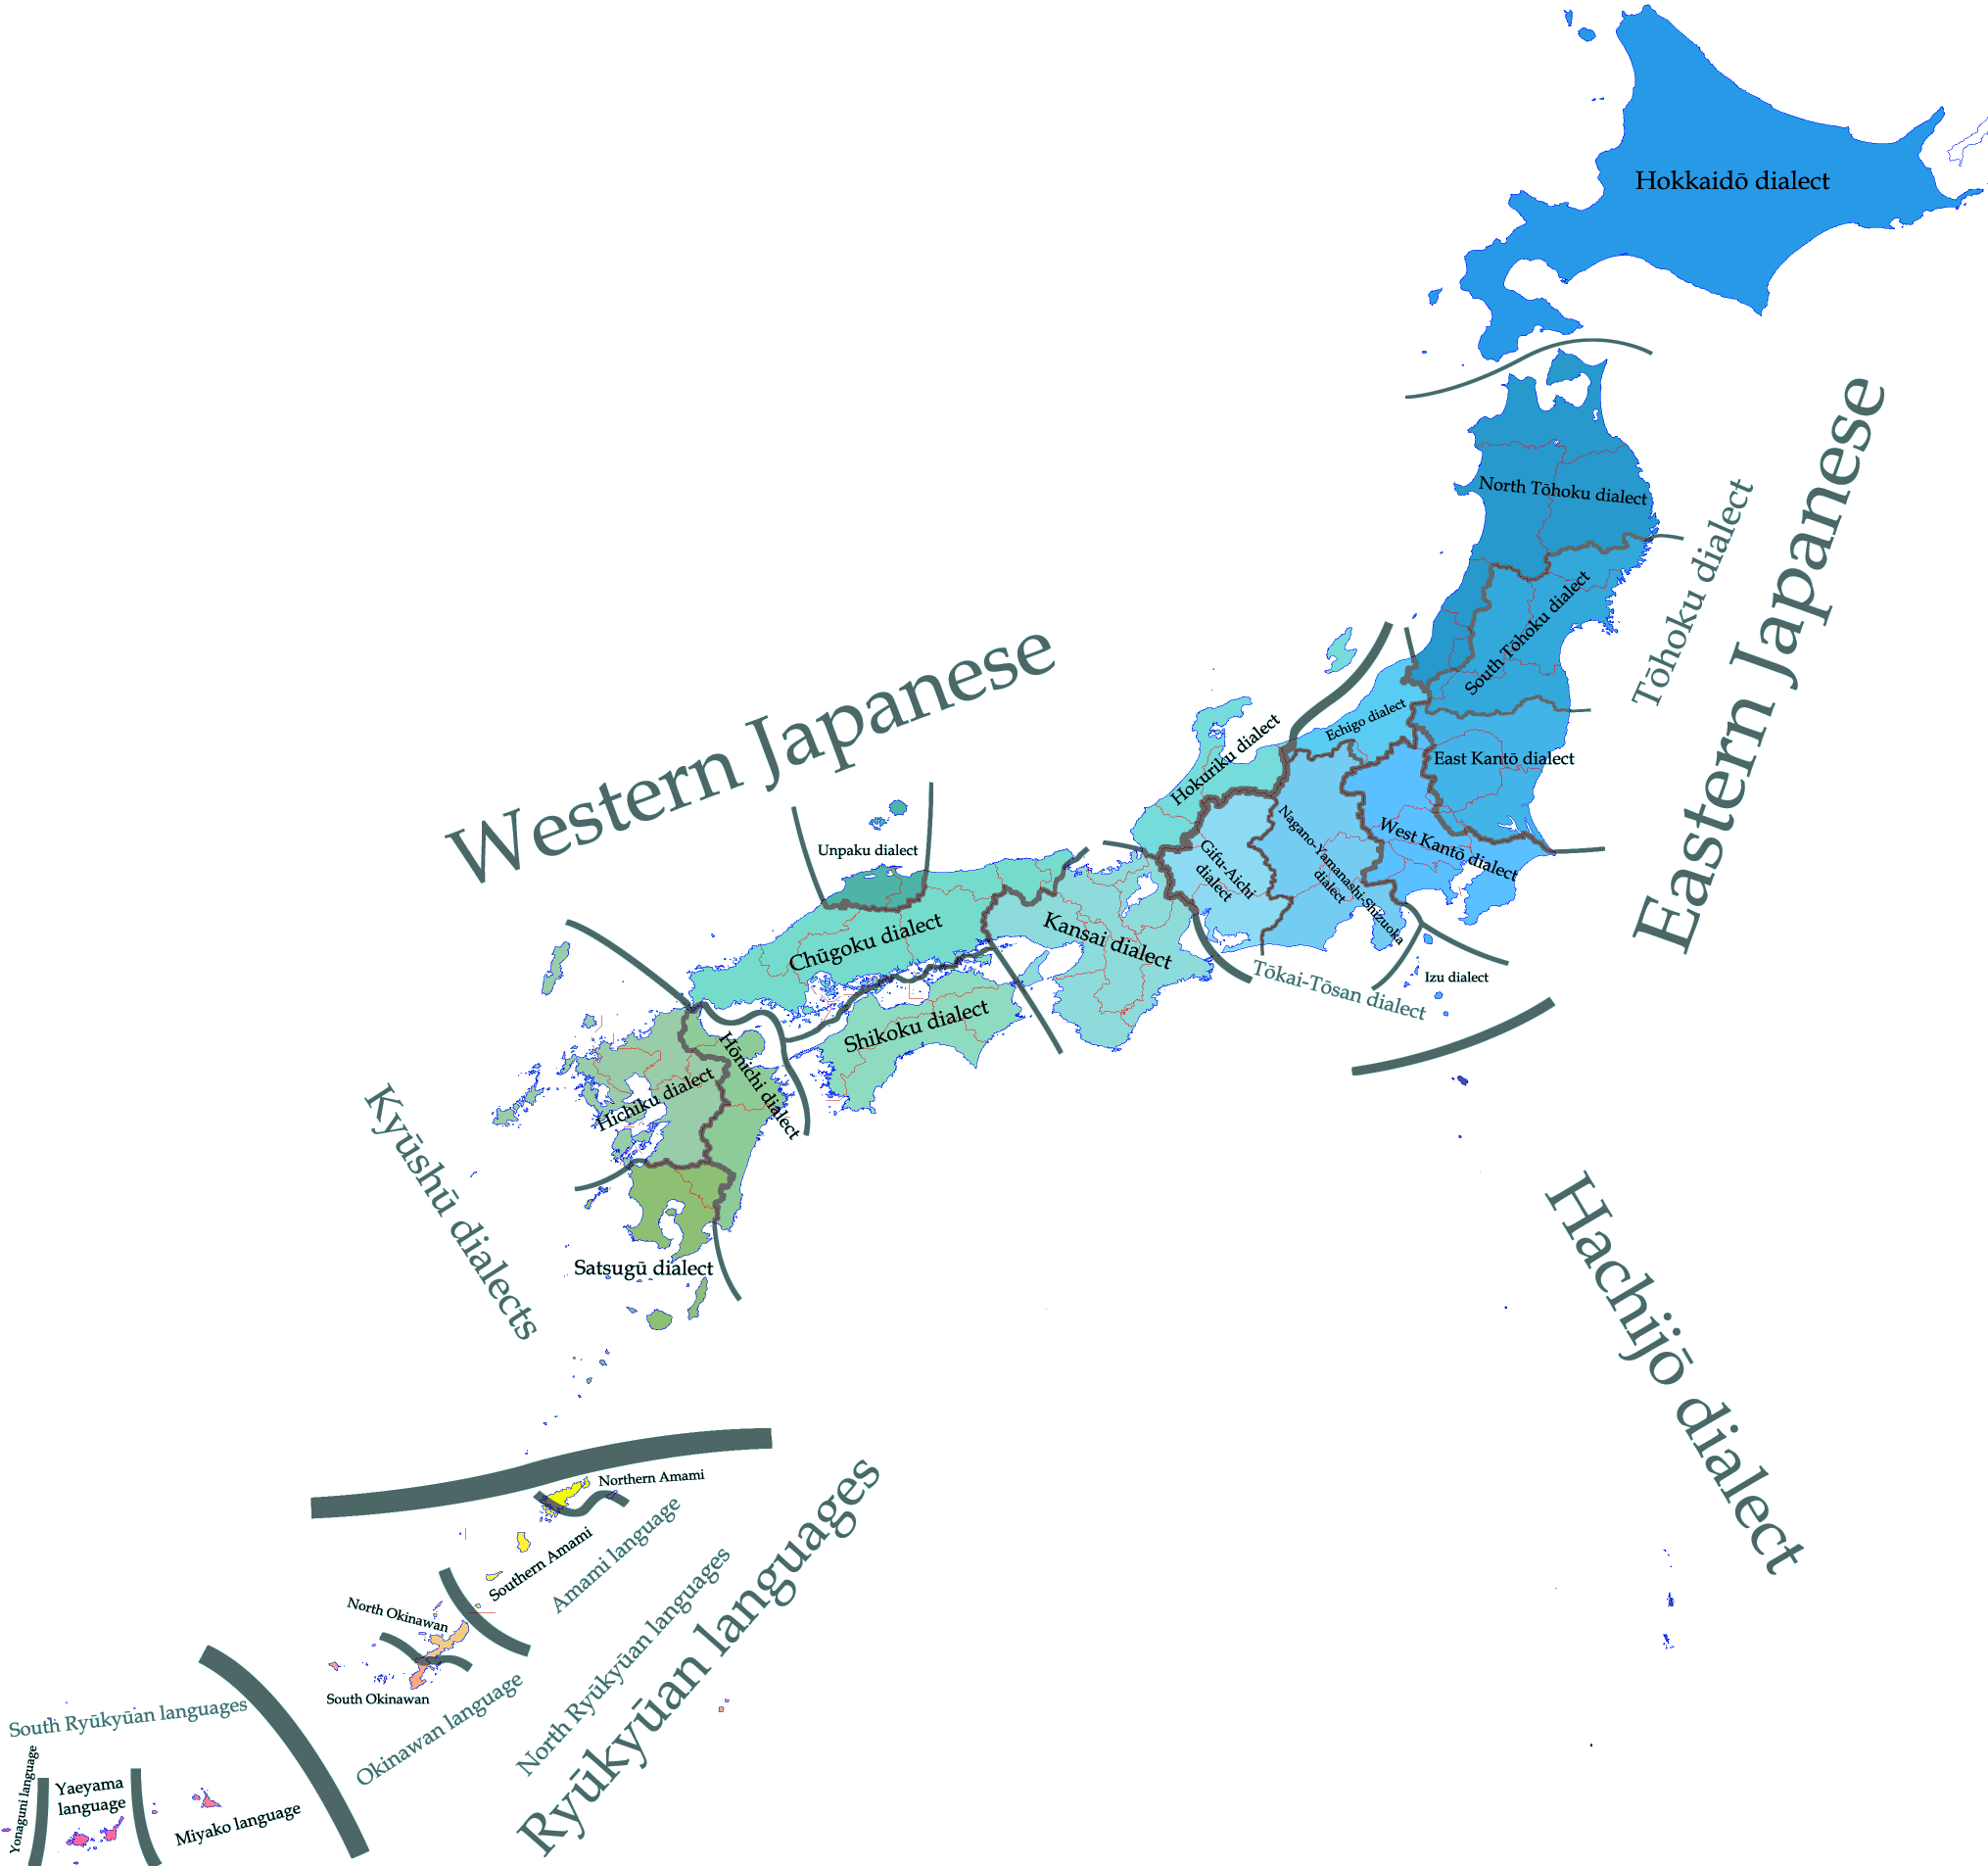 Japan - Carte linguistique / Linguistic map